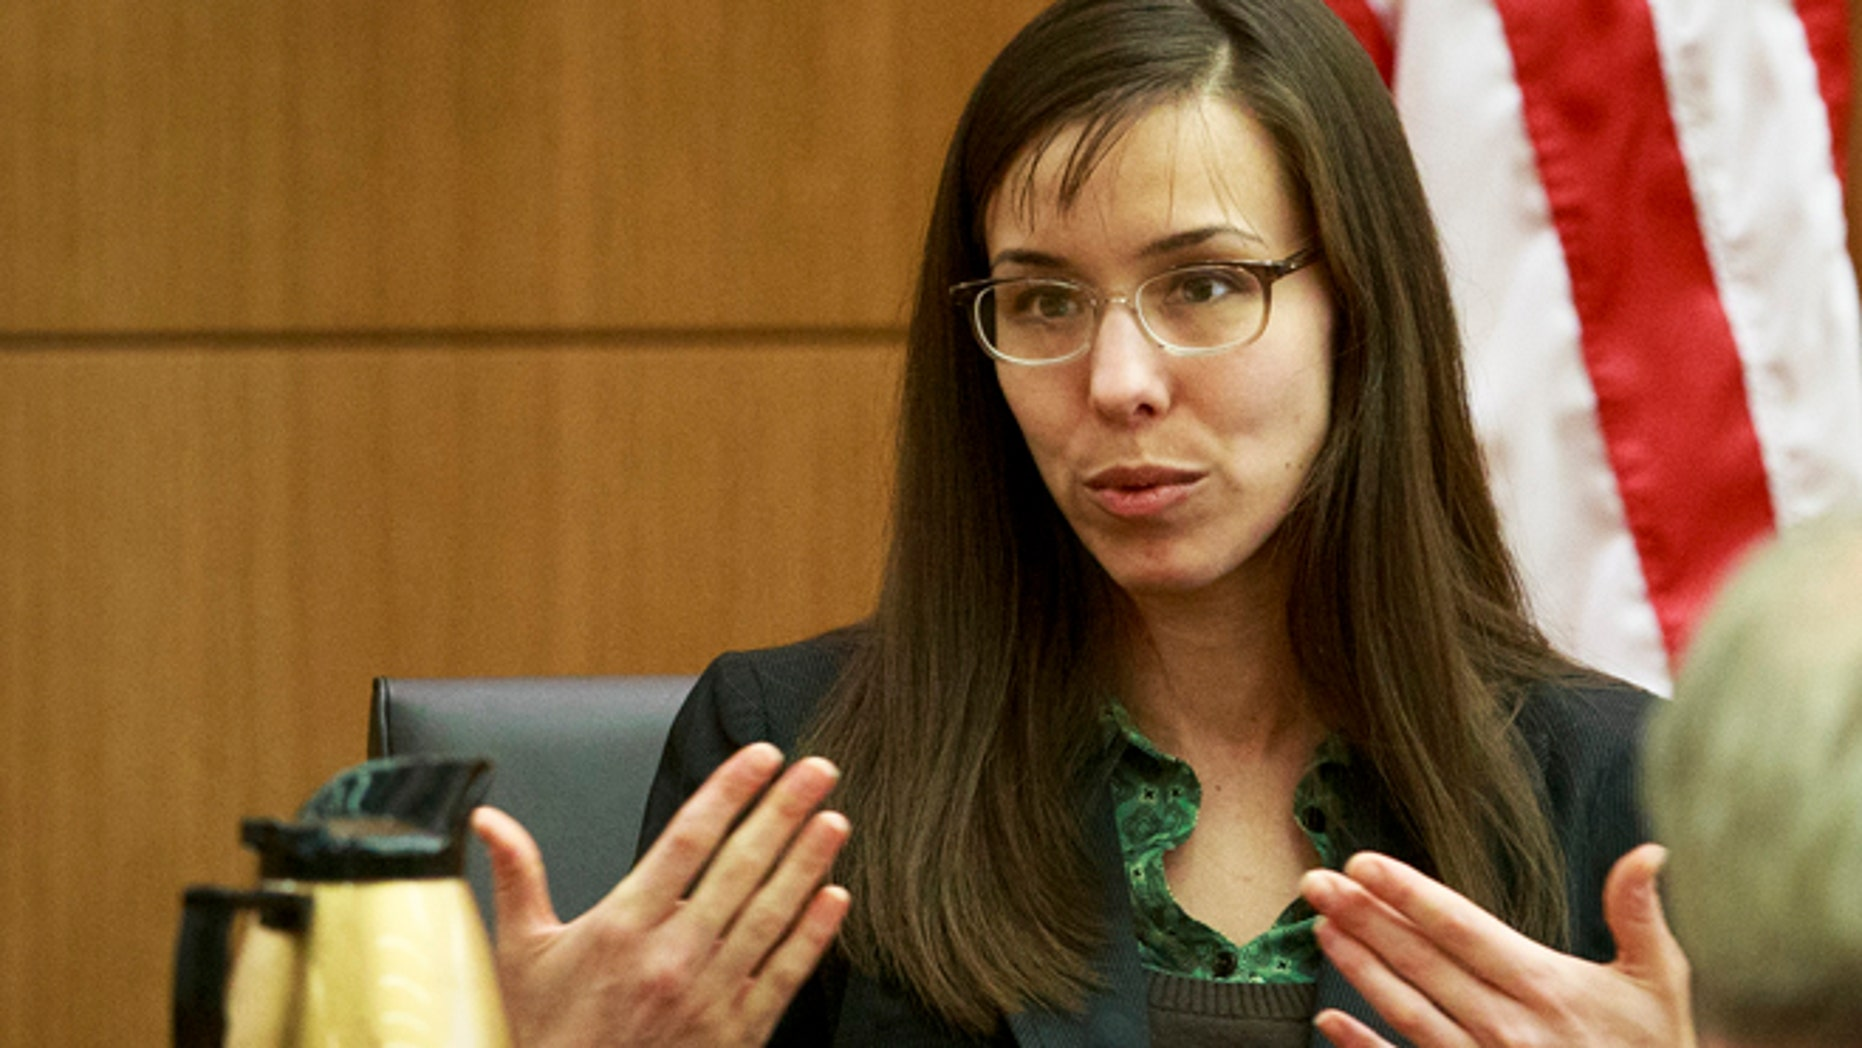 Feb. 6, 2013: Defendant Jodi Arias describes her relationship with Travis Alexander and answers questions from her attorney Kirk Nurmi as she testifies in her murder trial in Judge Sherry Stephens' Superior Court.  Arias, 32, is accused of stabbing and slashing Alexander, 27 times, slitting his throat and shooting him in the head in his suburban Phoenix home in June 2008. She initially denied any involvement, then later blamed it on masked intruders before eventually settling on self-defense. (AP)